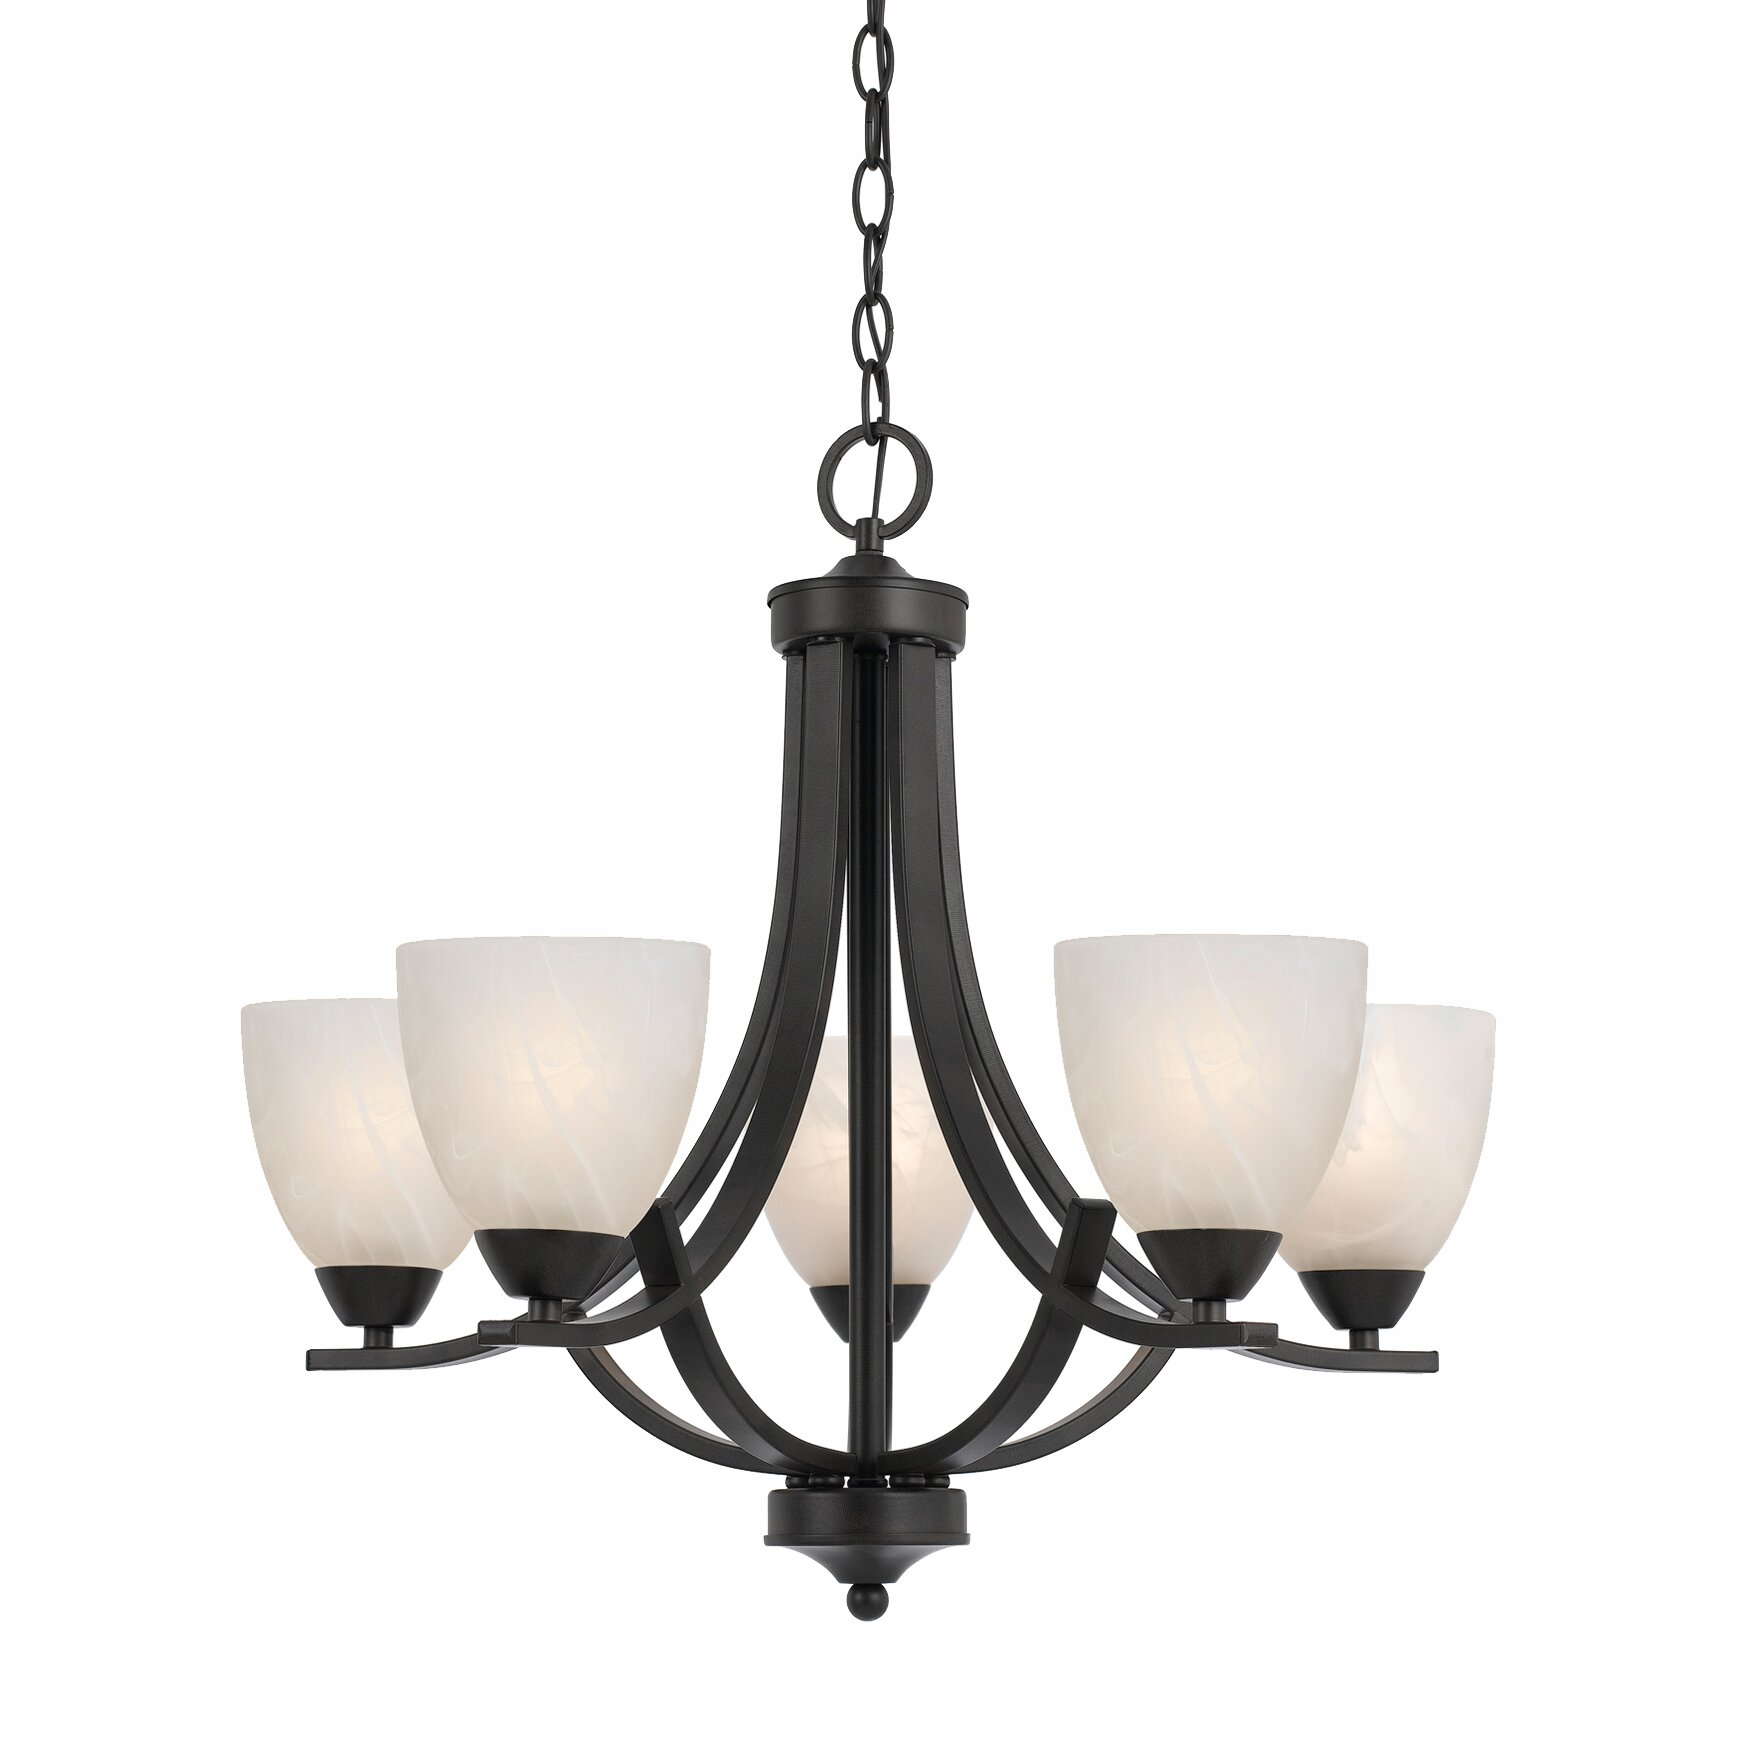 Wayfair Chandelier: Value 5 Light Chandelier